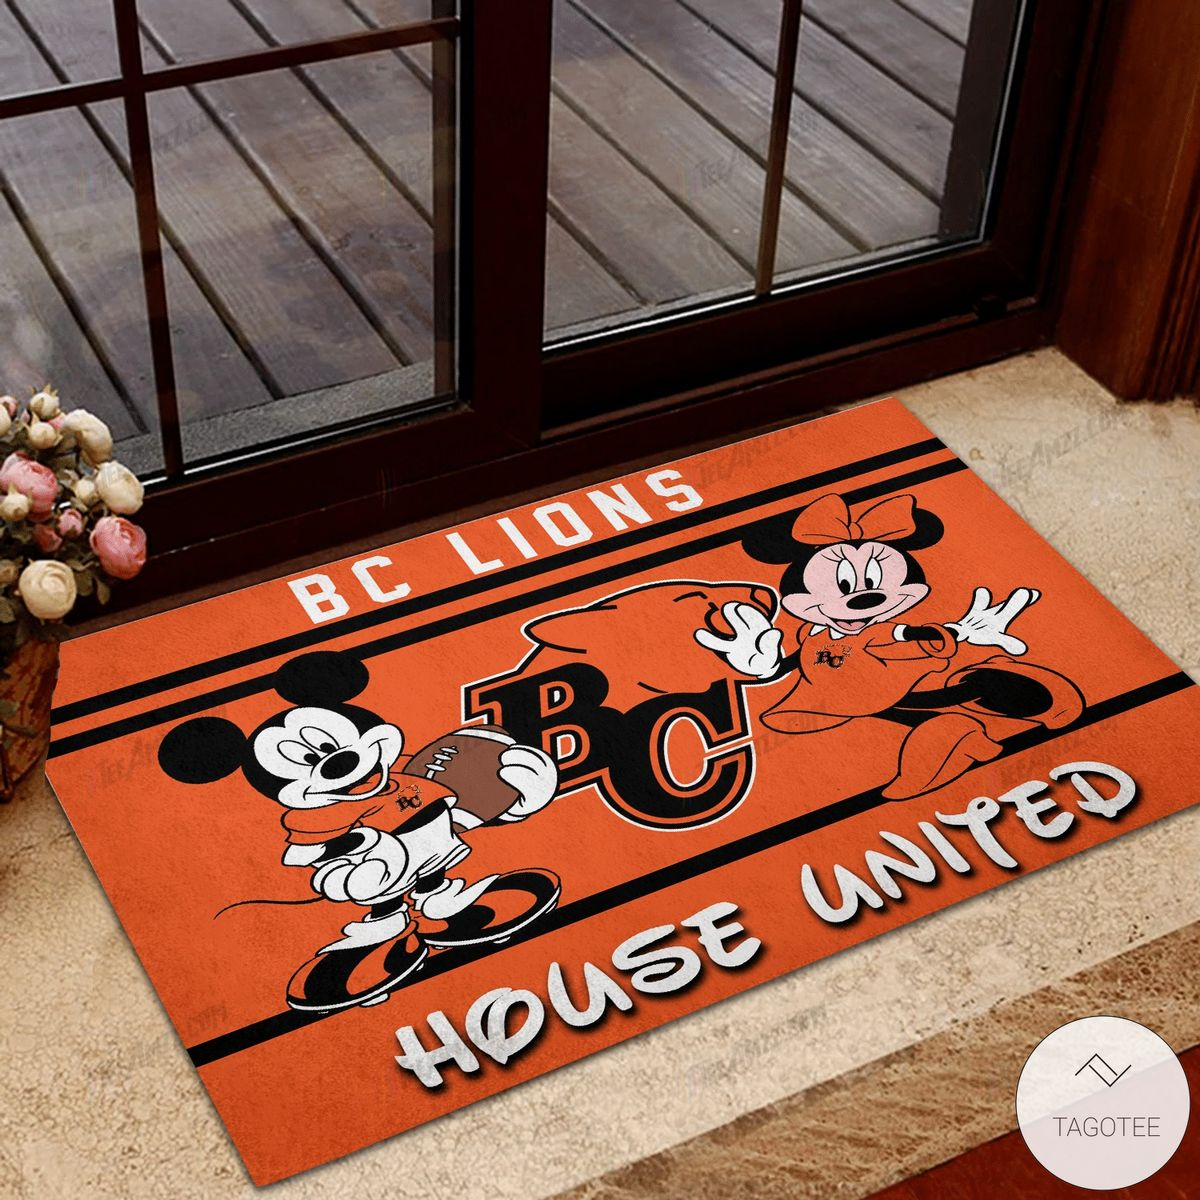 BC Lions House United Mickey Mouse And Minnie Mouse Doormat